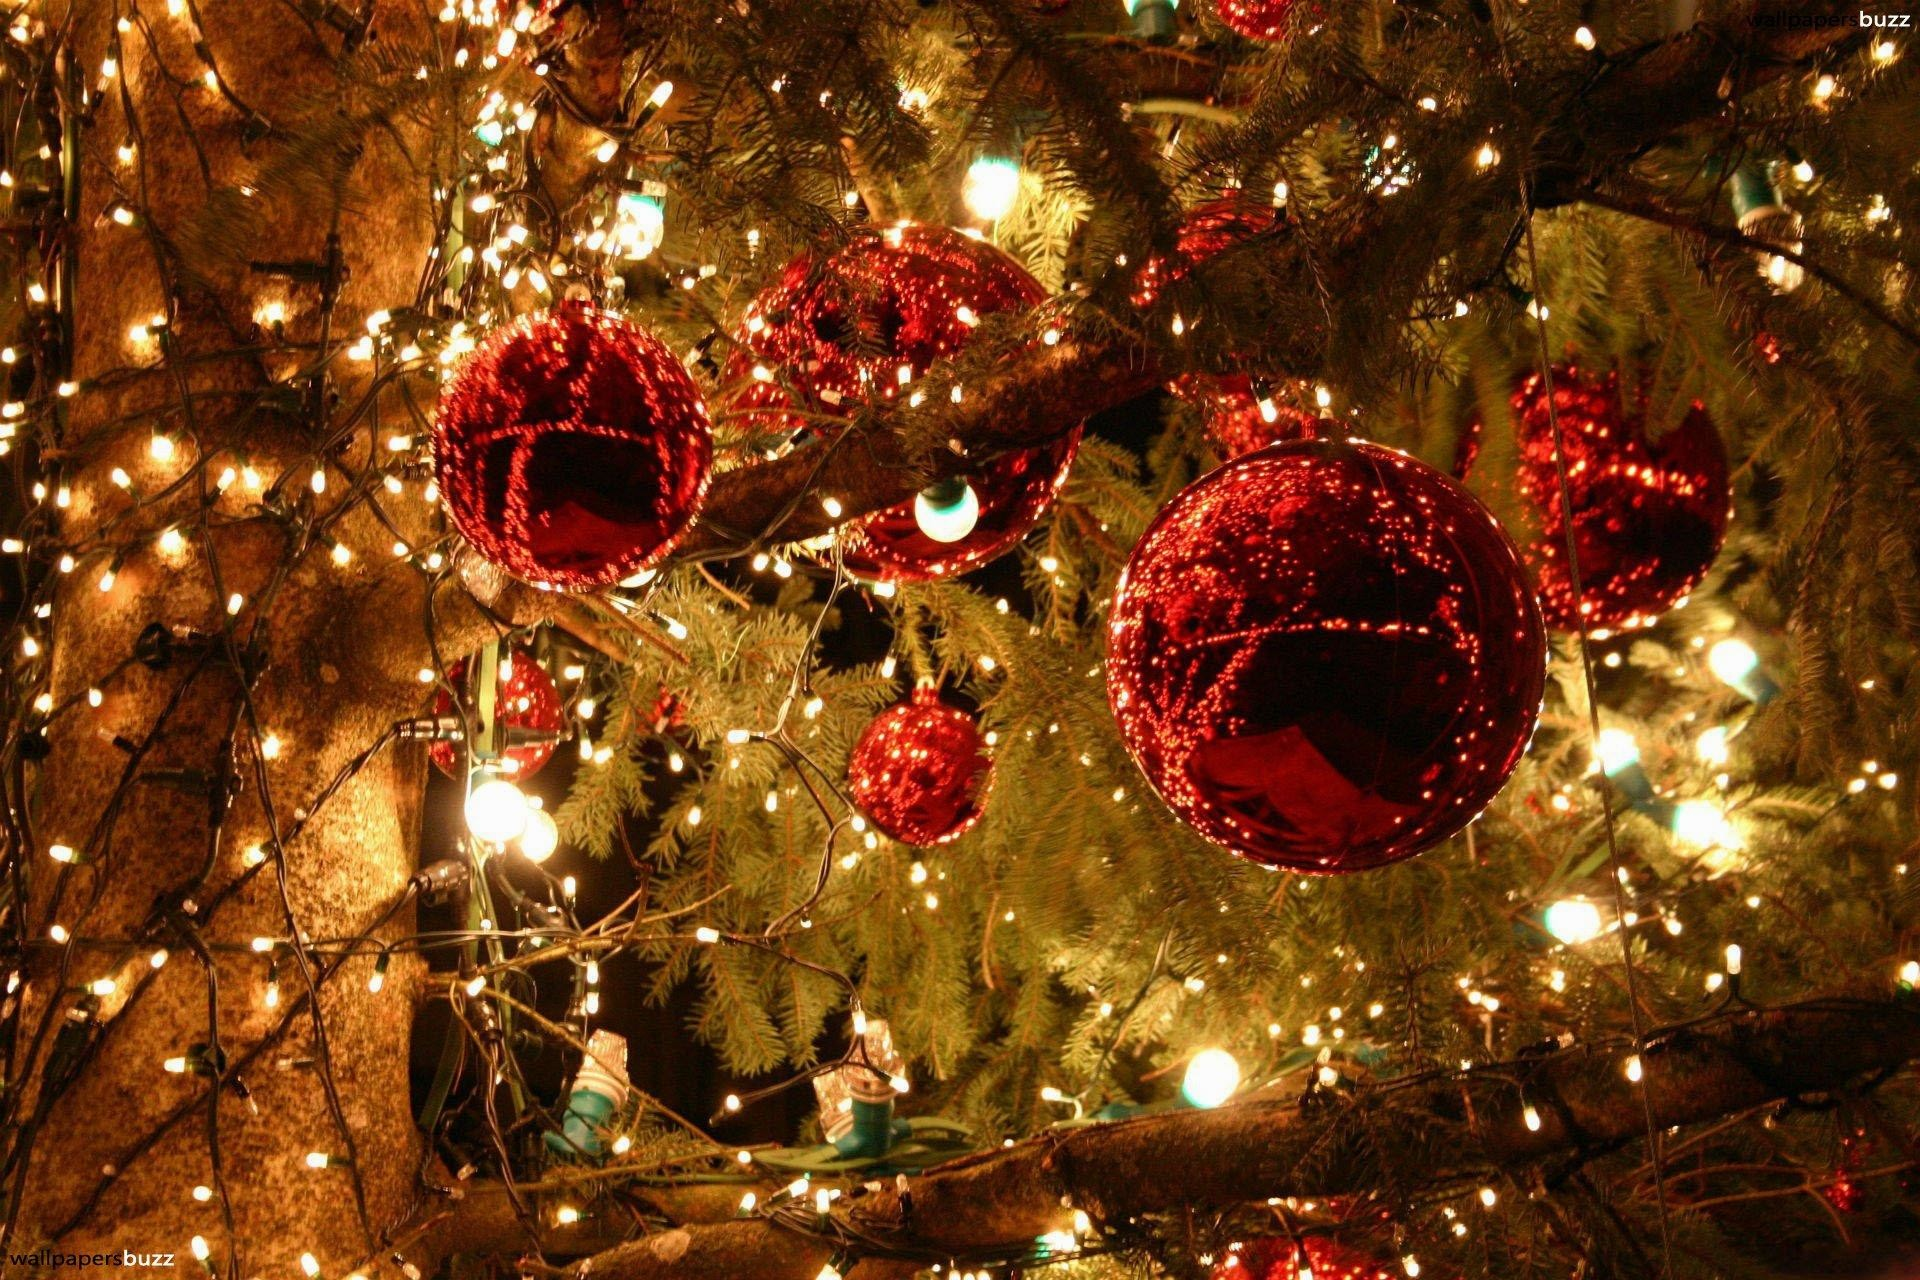 1920x1280 wallpaper.wiki-Wallpaper-Christmas-Lights-PIC-WPB002731